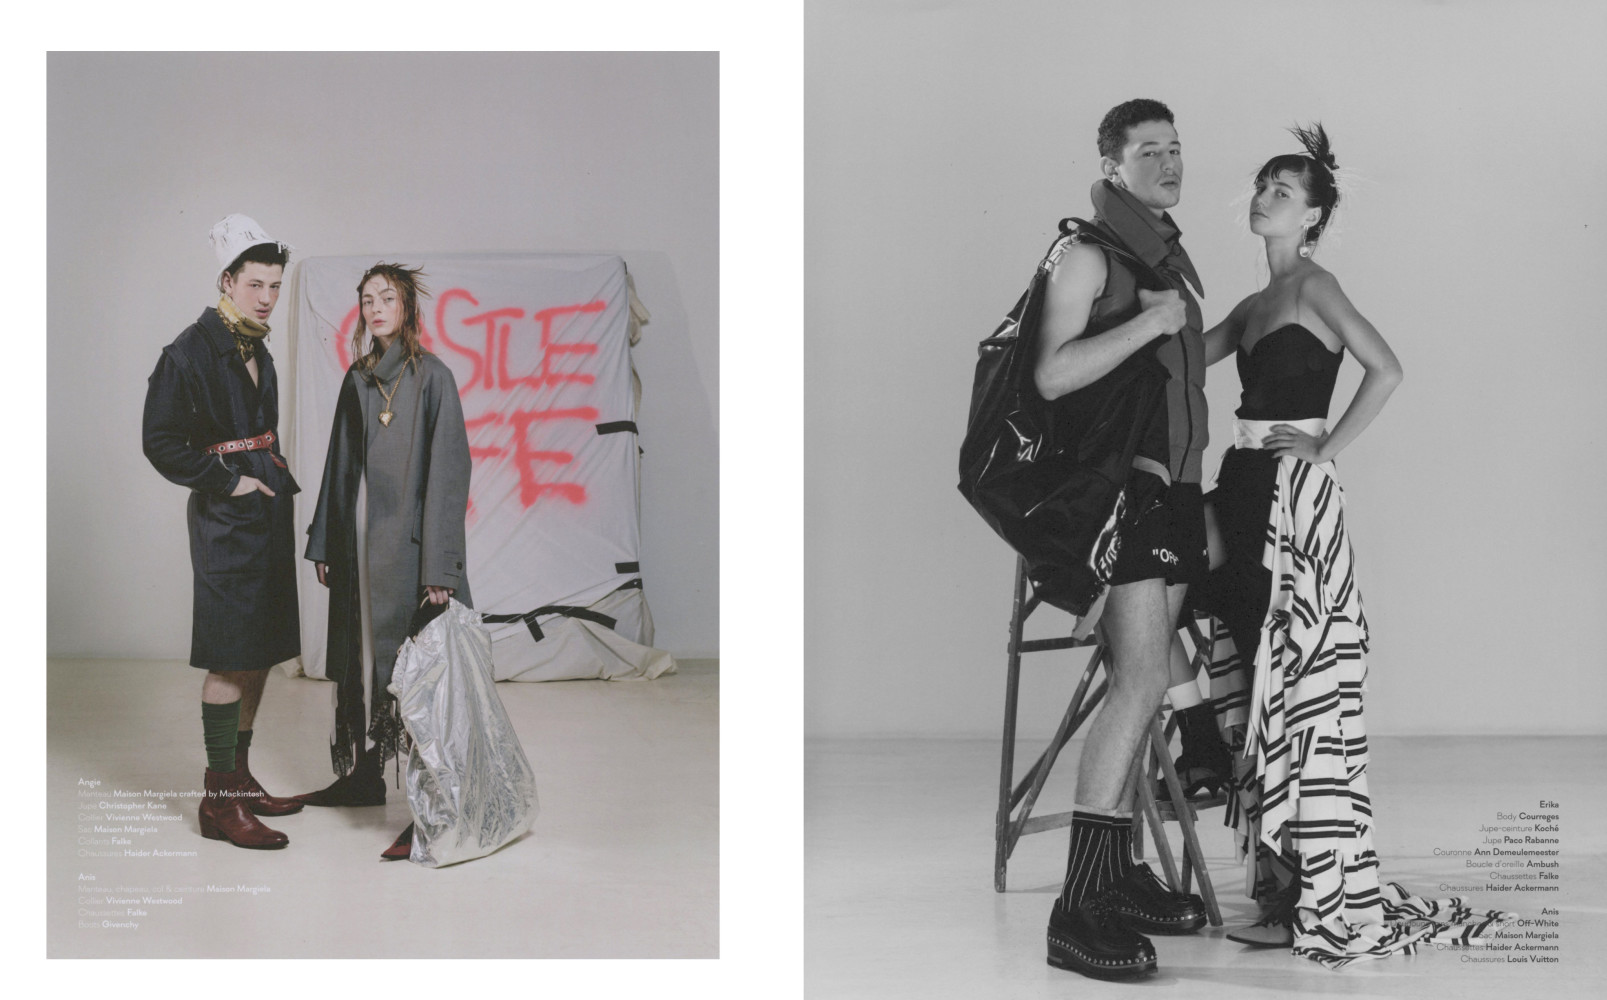 Anis Ayoub and Angie Sherbourne for Dedicate Magazine